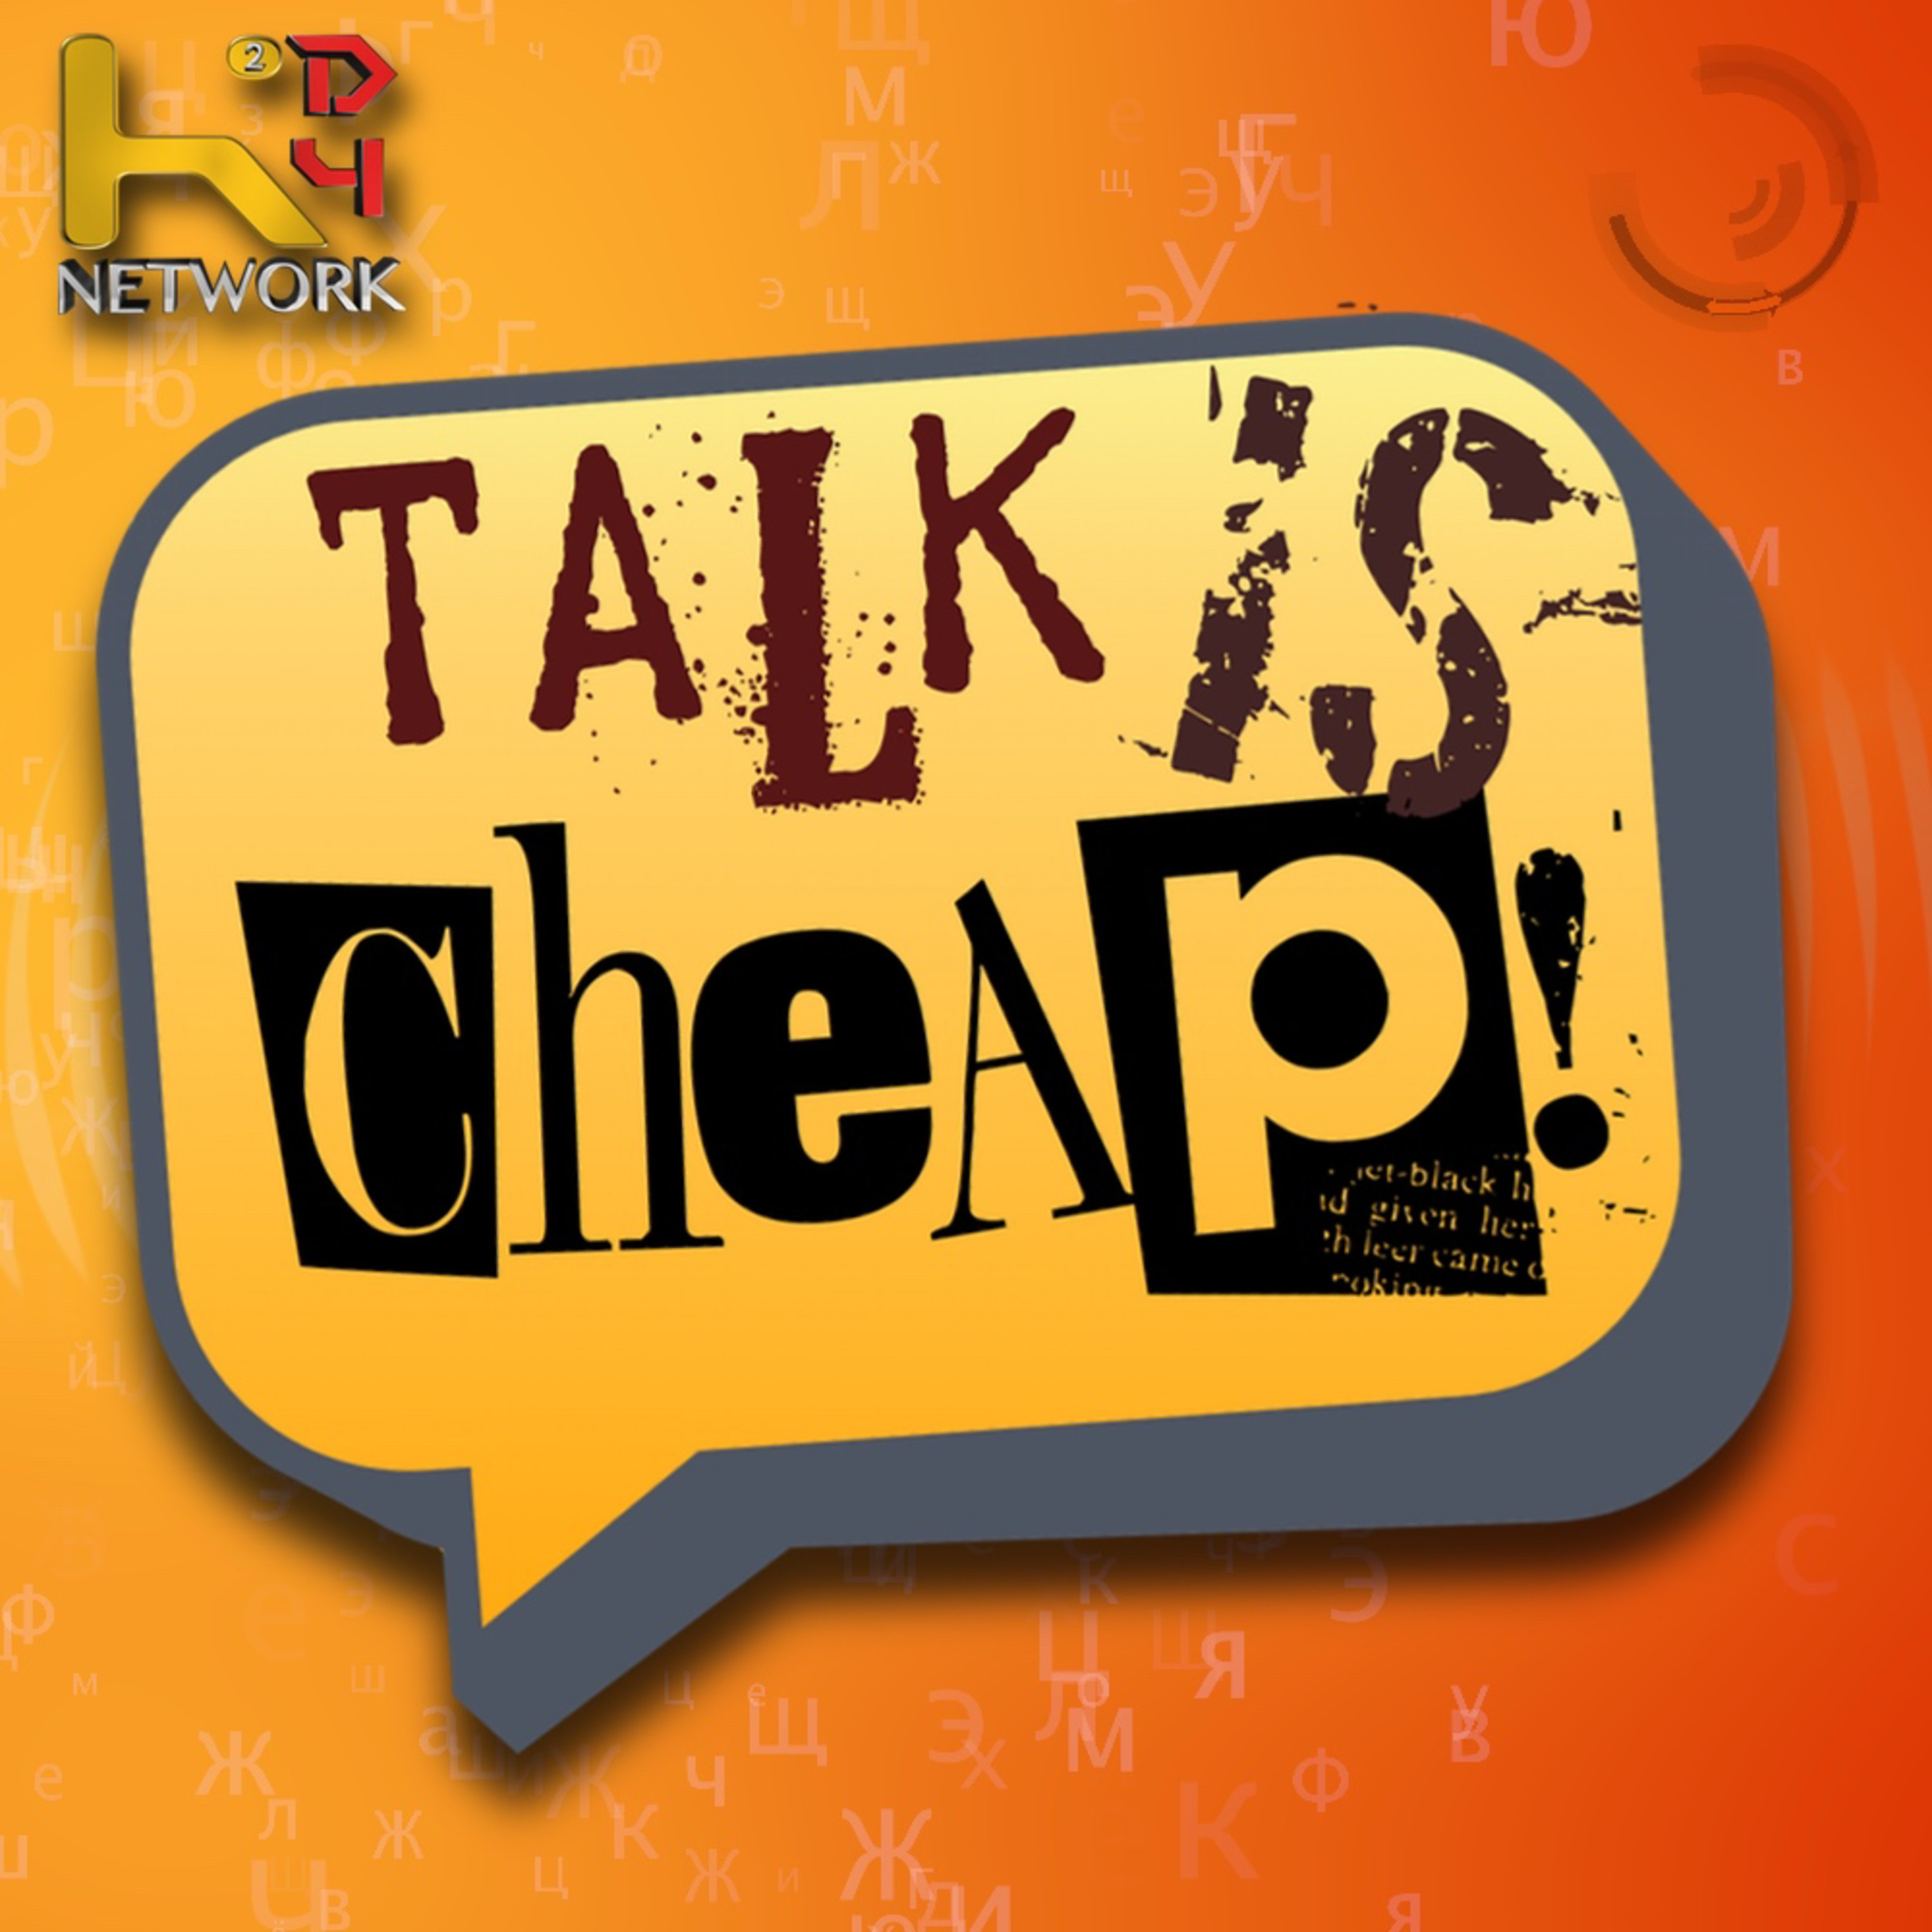 EP090 - Project Serpo by Talk is Cheap! • A podcast on Anchor